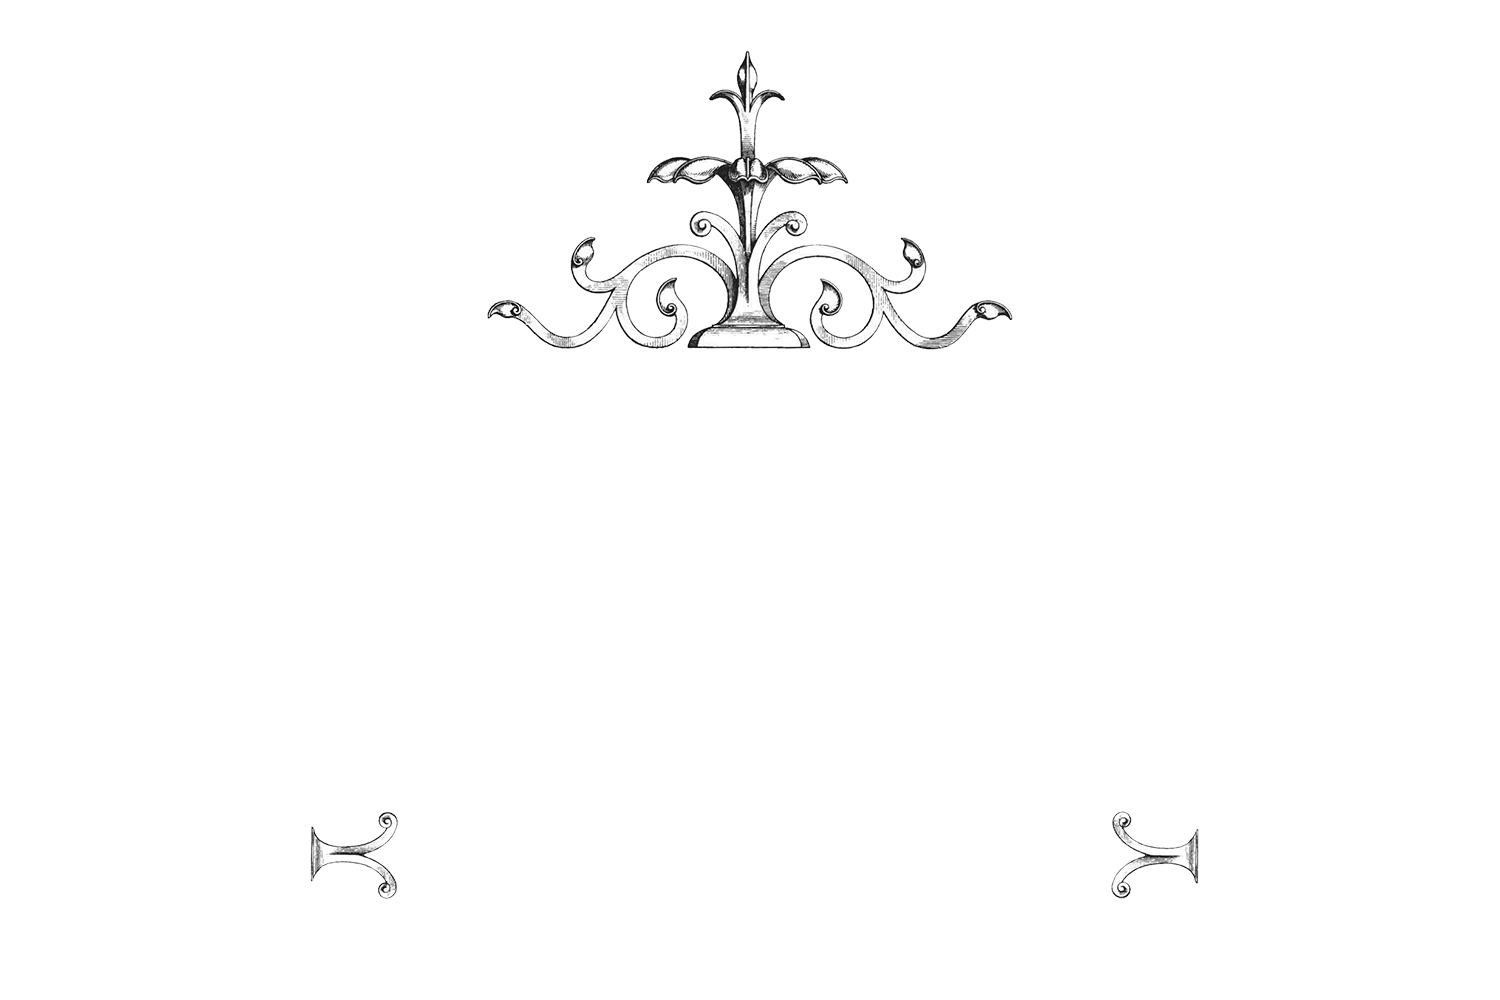 REDFIELDS Home decor decals, Behind the chair, Decor